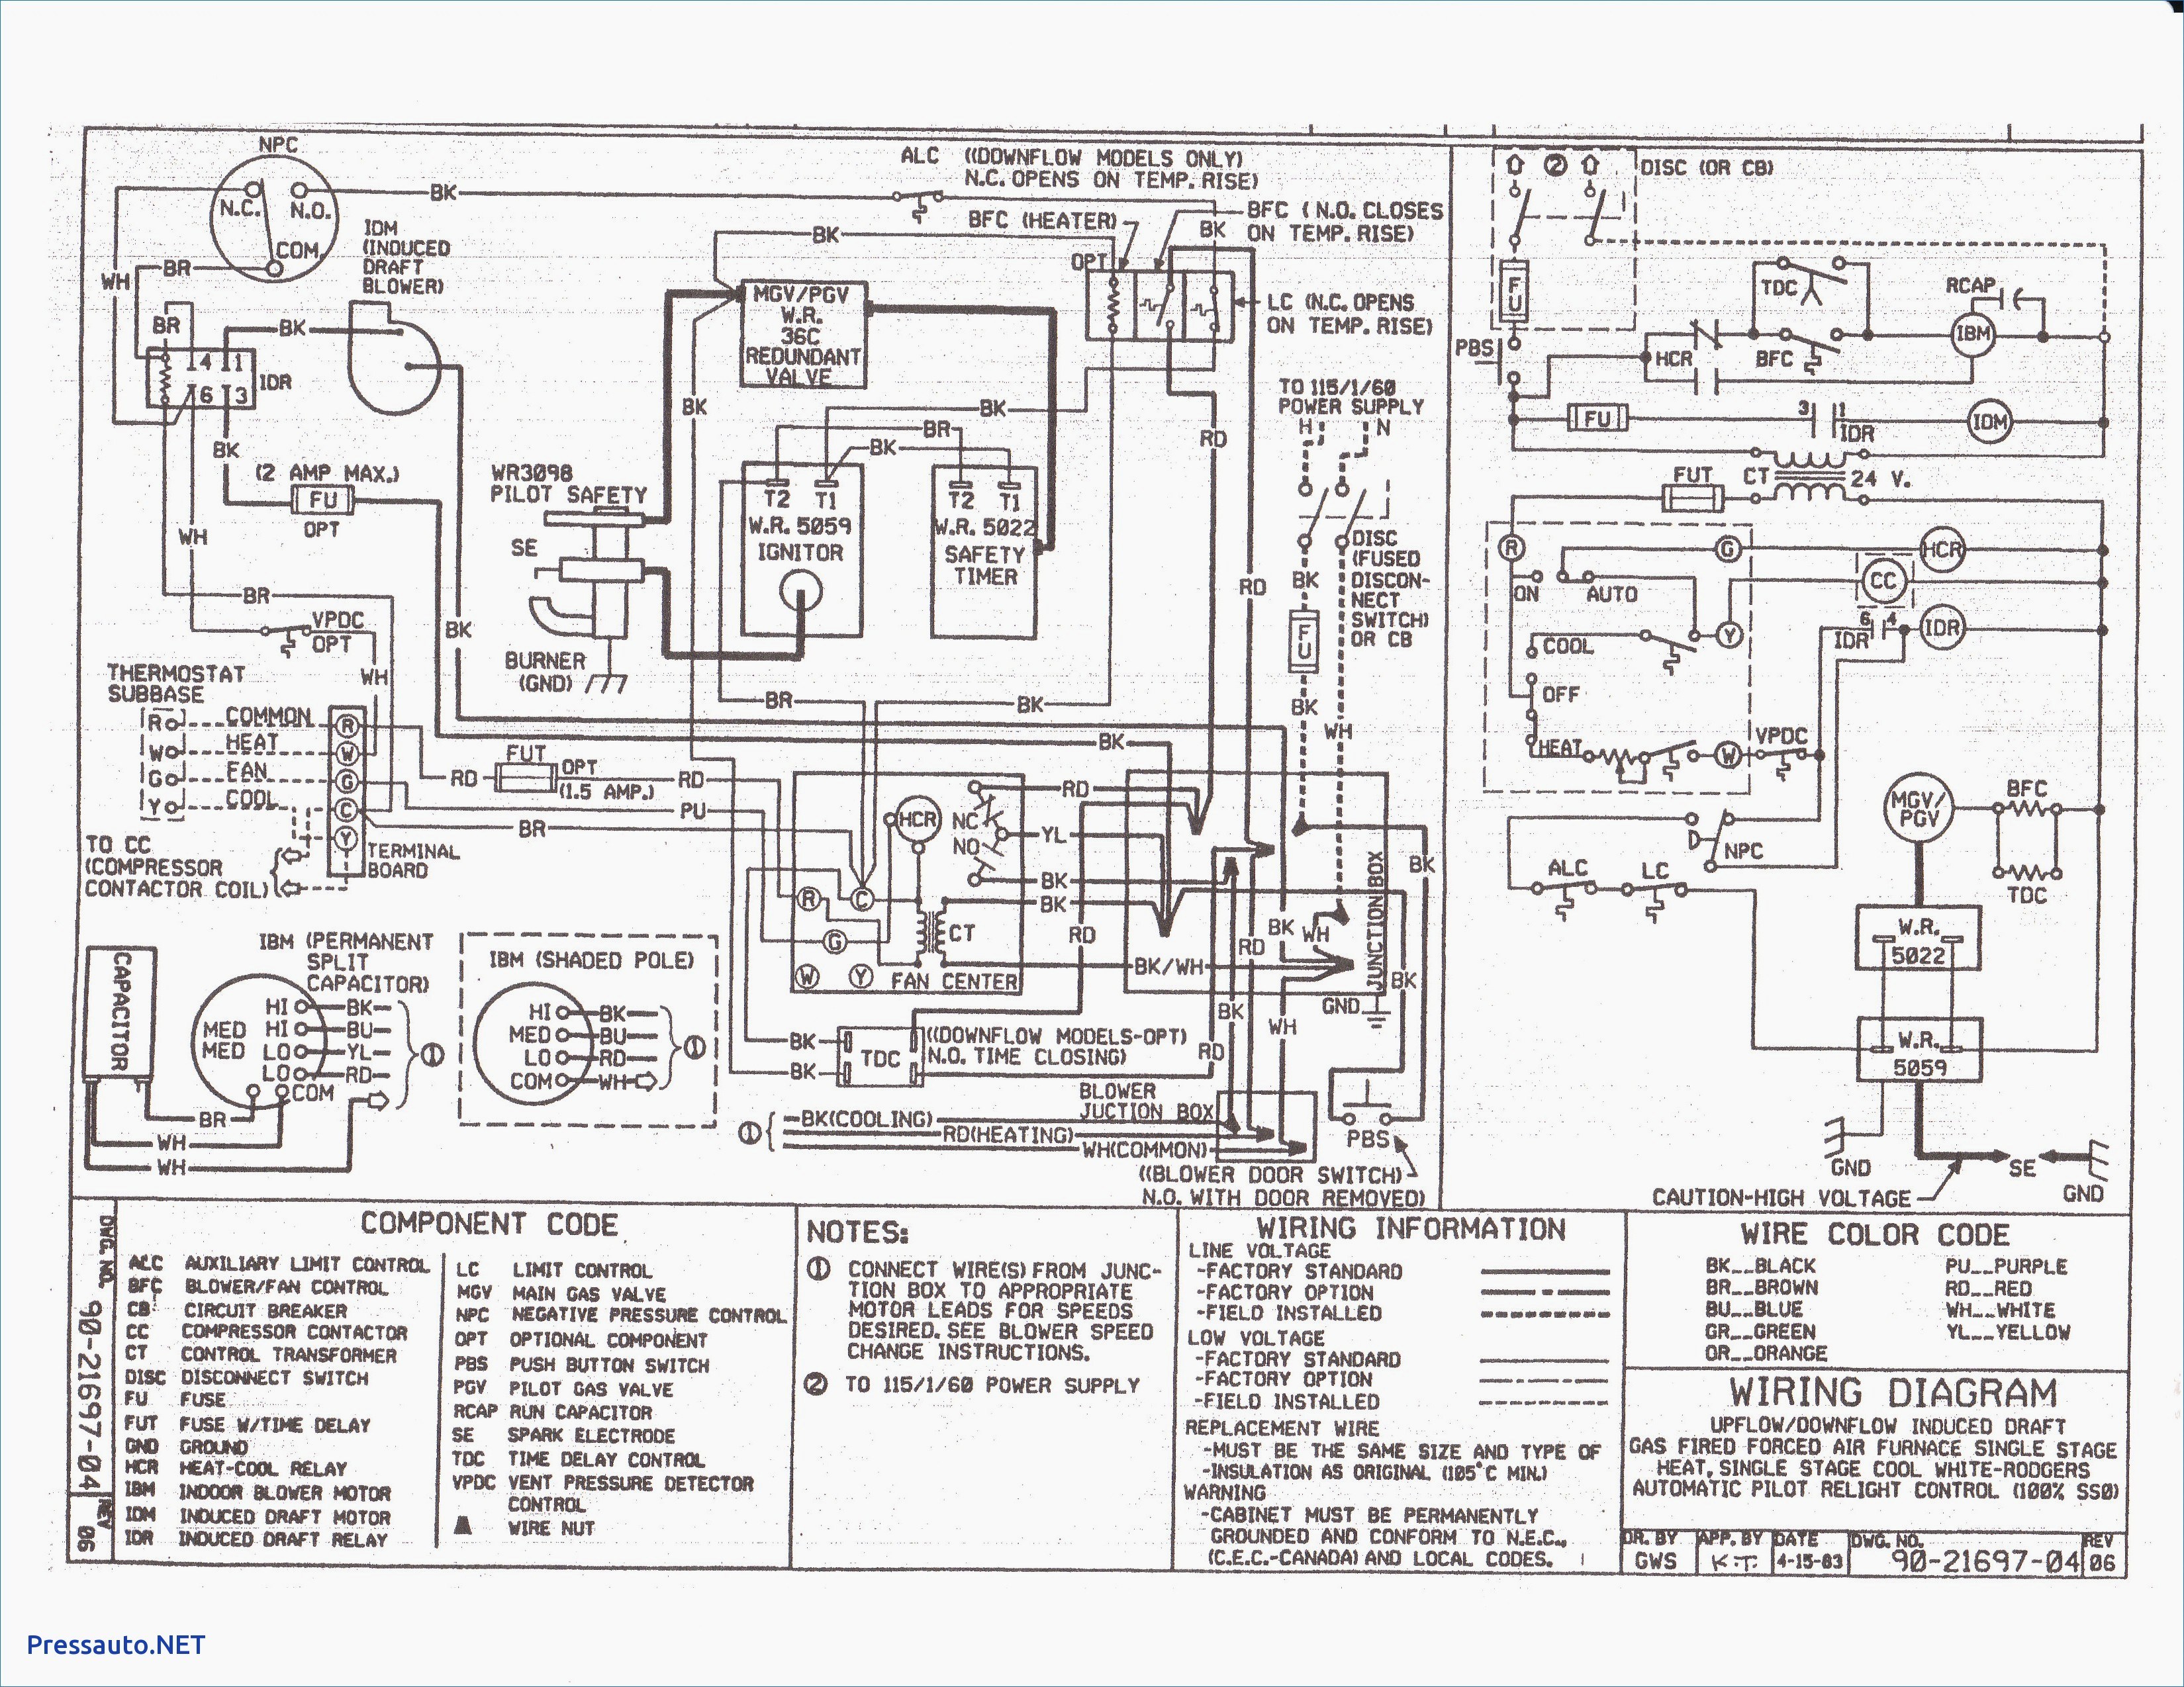 Intertherm Electric Furnace Wiring Diagram Beautiful Intertherm E2eb 015ha Wiring Diagram E2eb 015ha Sequencer • Indy500